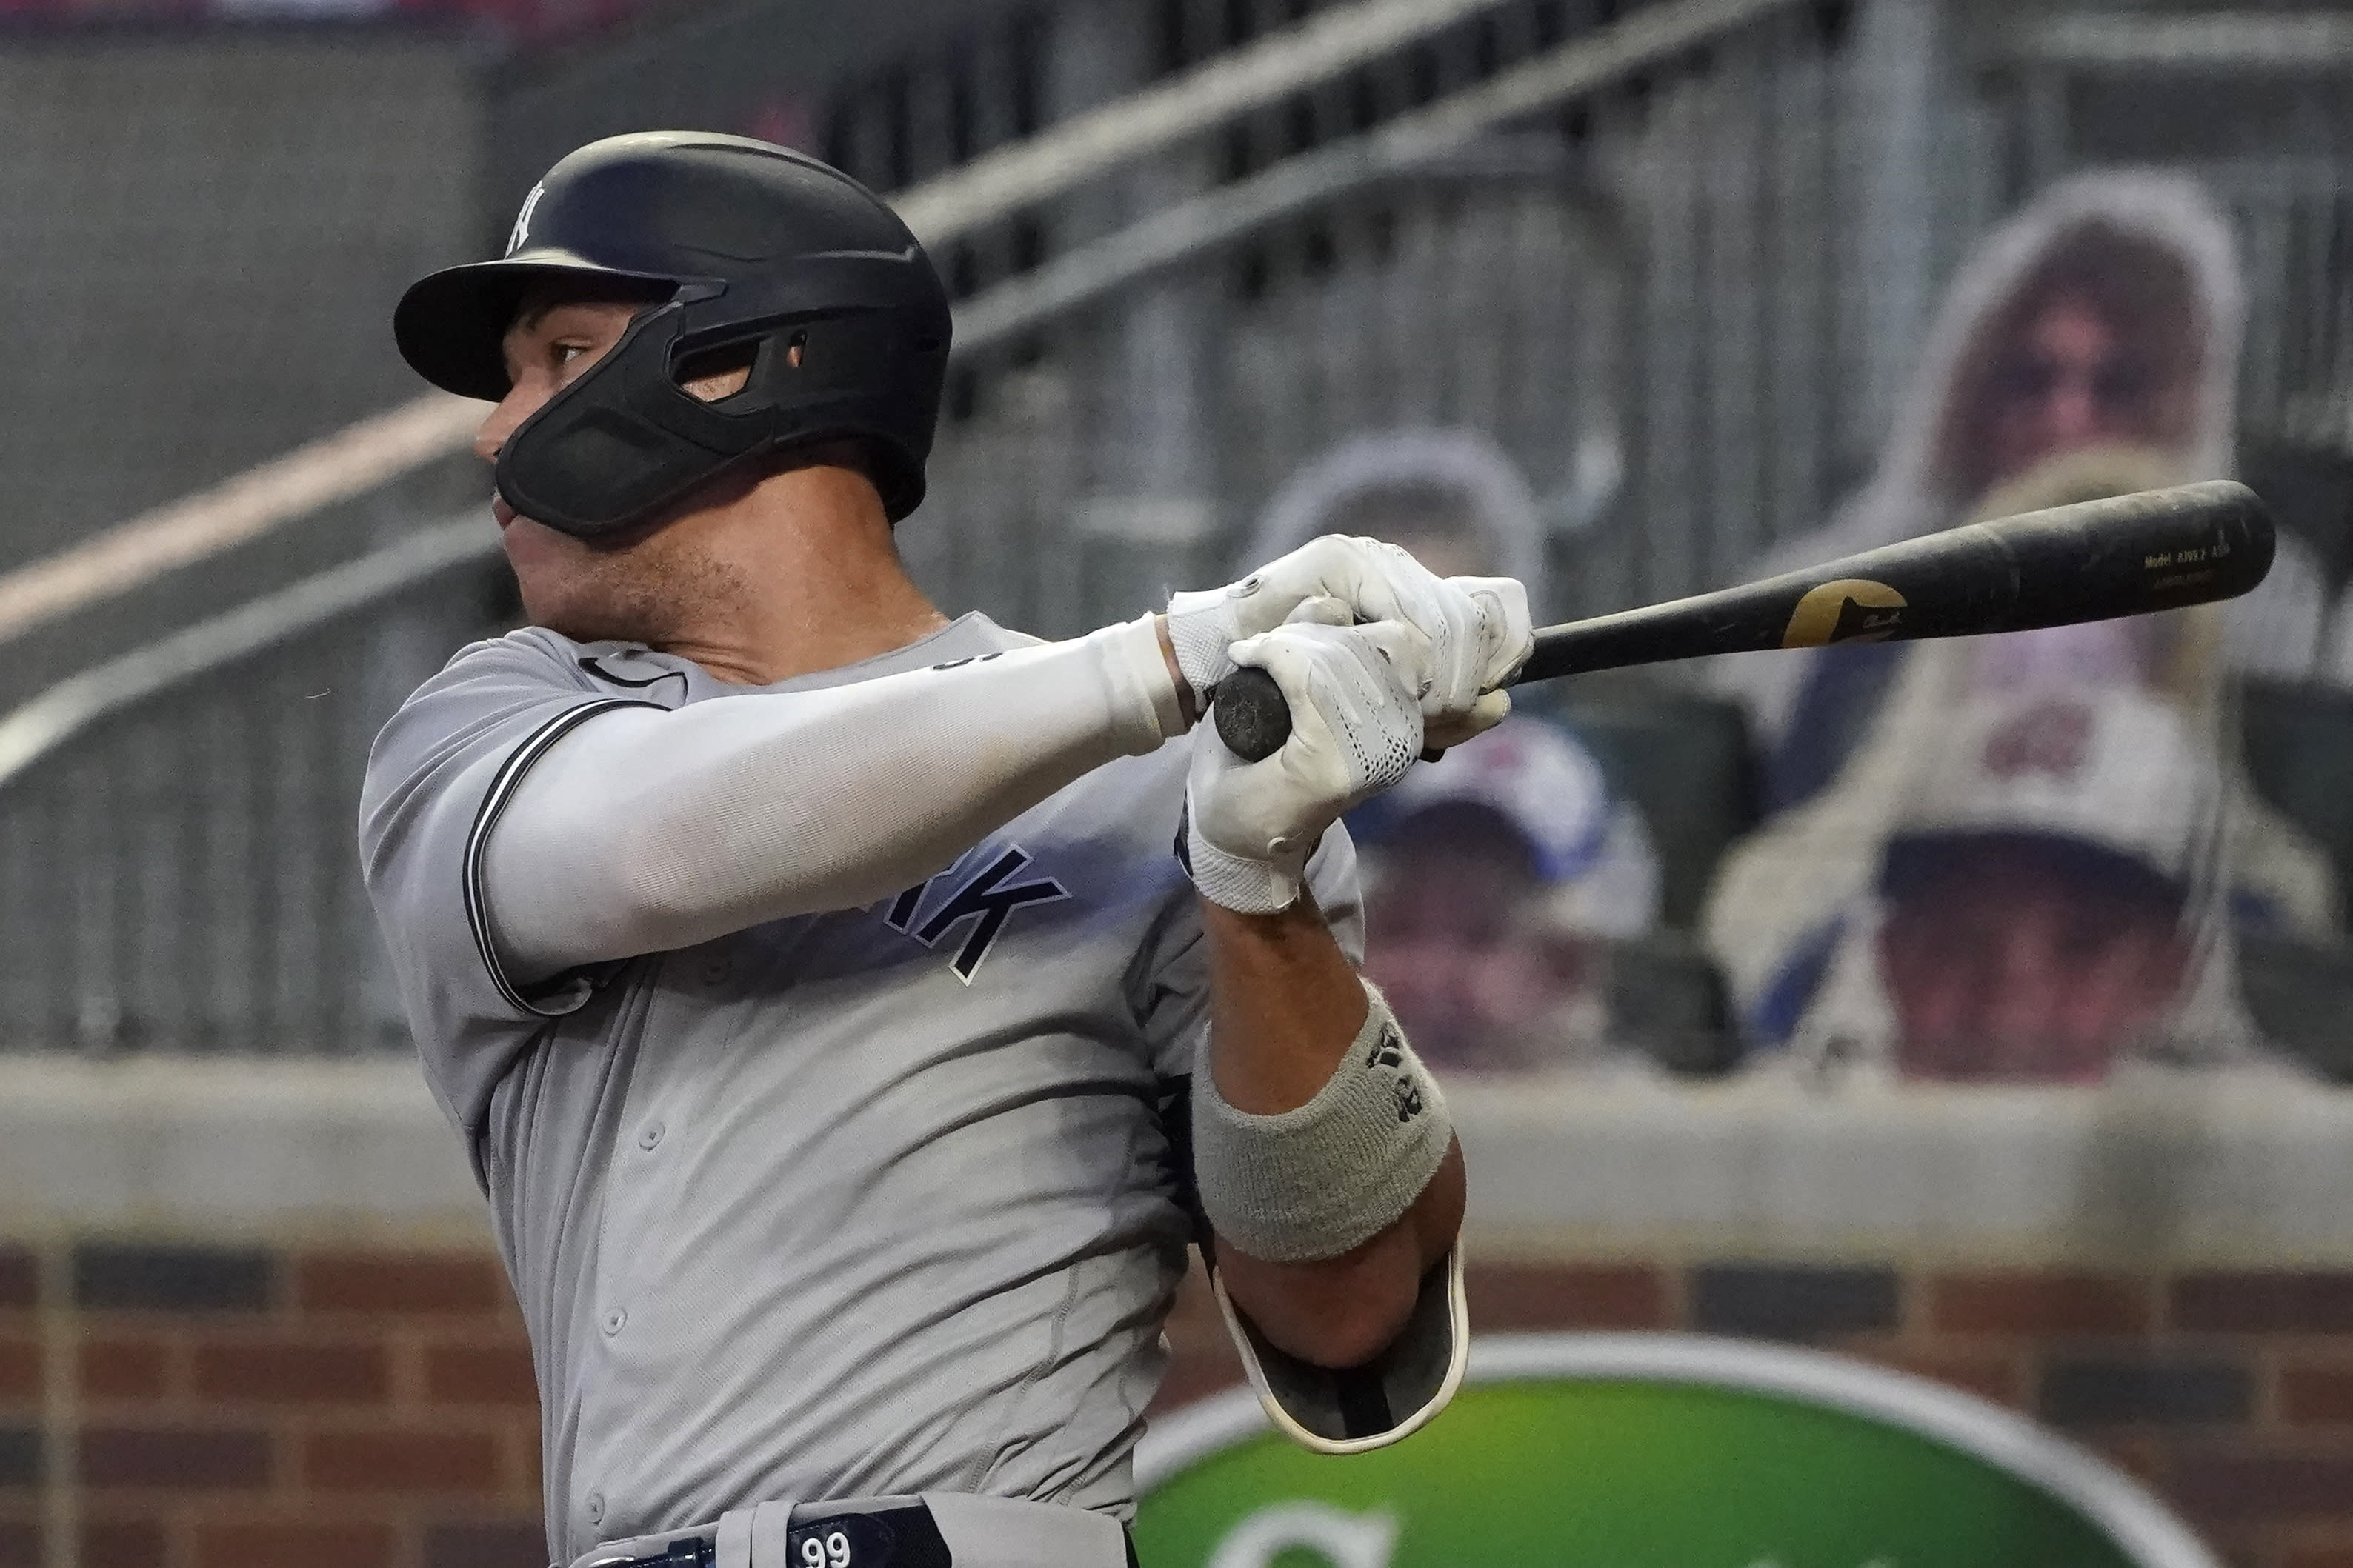 New York Yankees' Aaron Judge follows through on a single during the fourth inning of the second game of the team's baseball doubleheader against the Atlanta Braves on Wednesday, Aug. 26, 2020, in Atlanta. (AP Photo/John Bazemore)